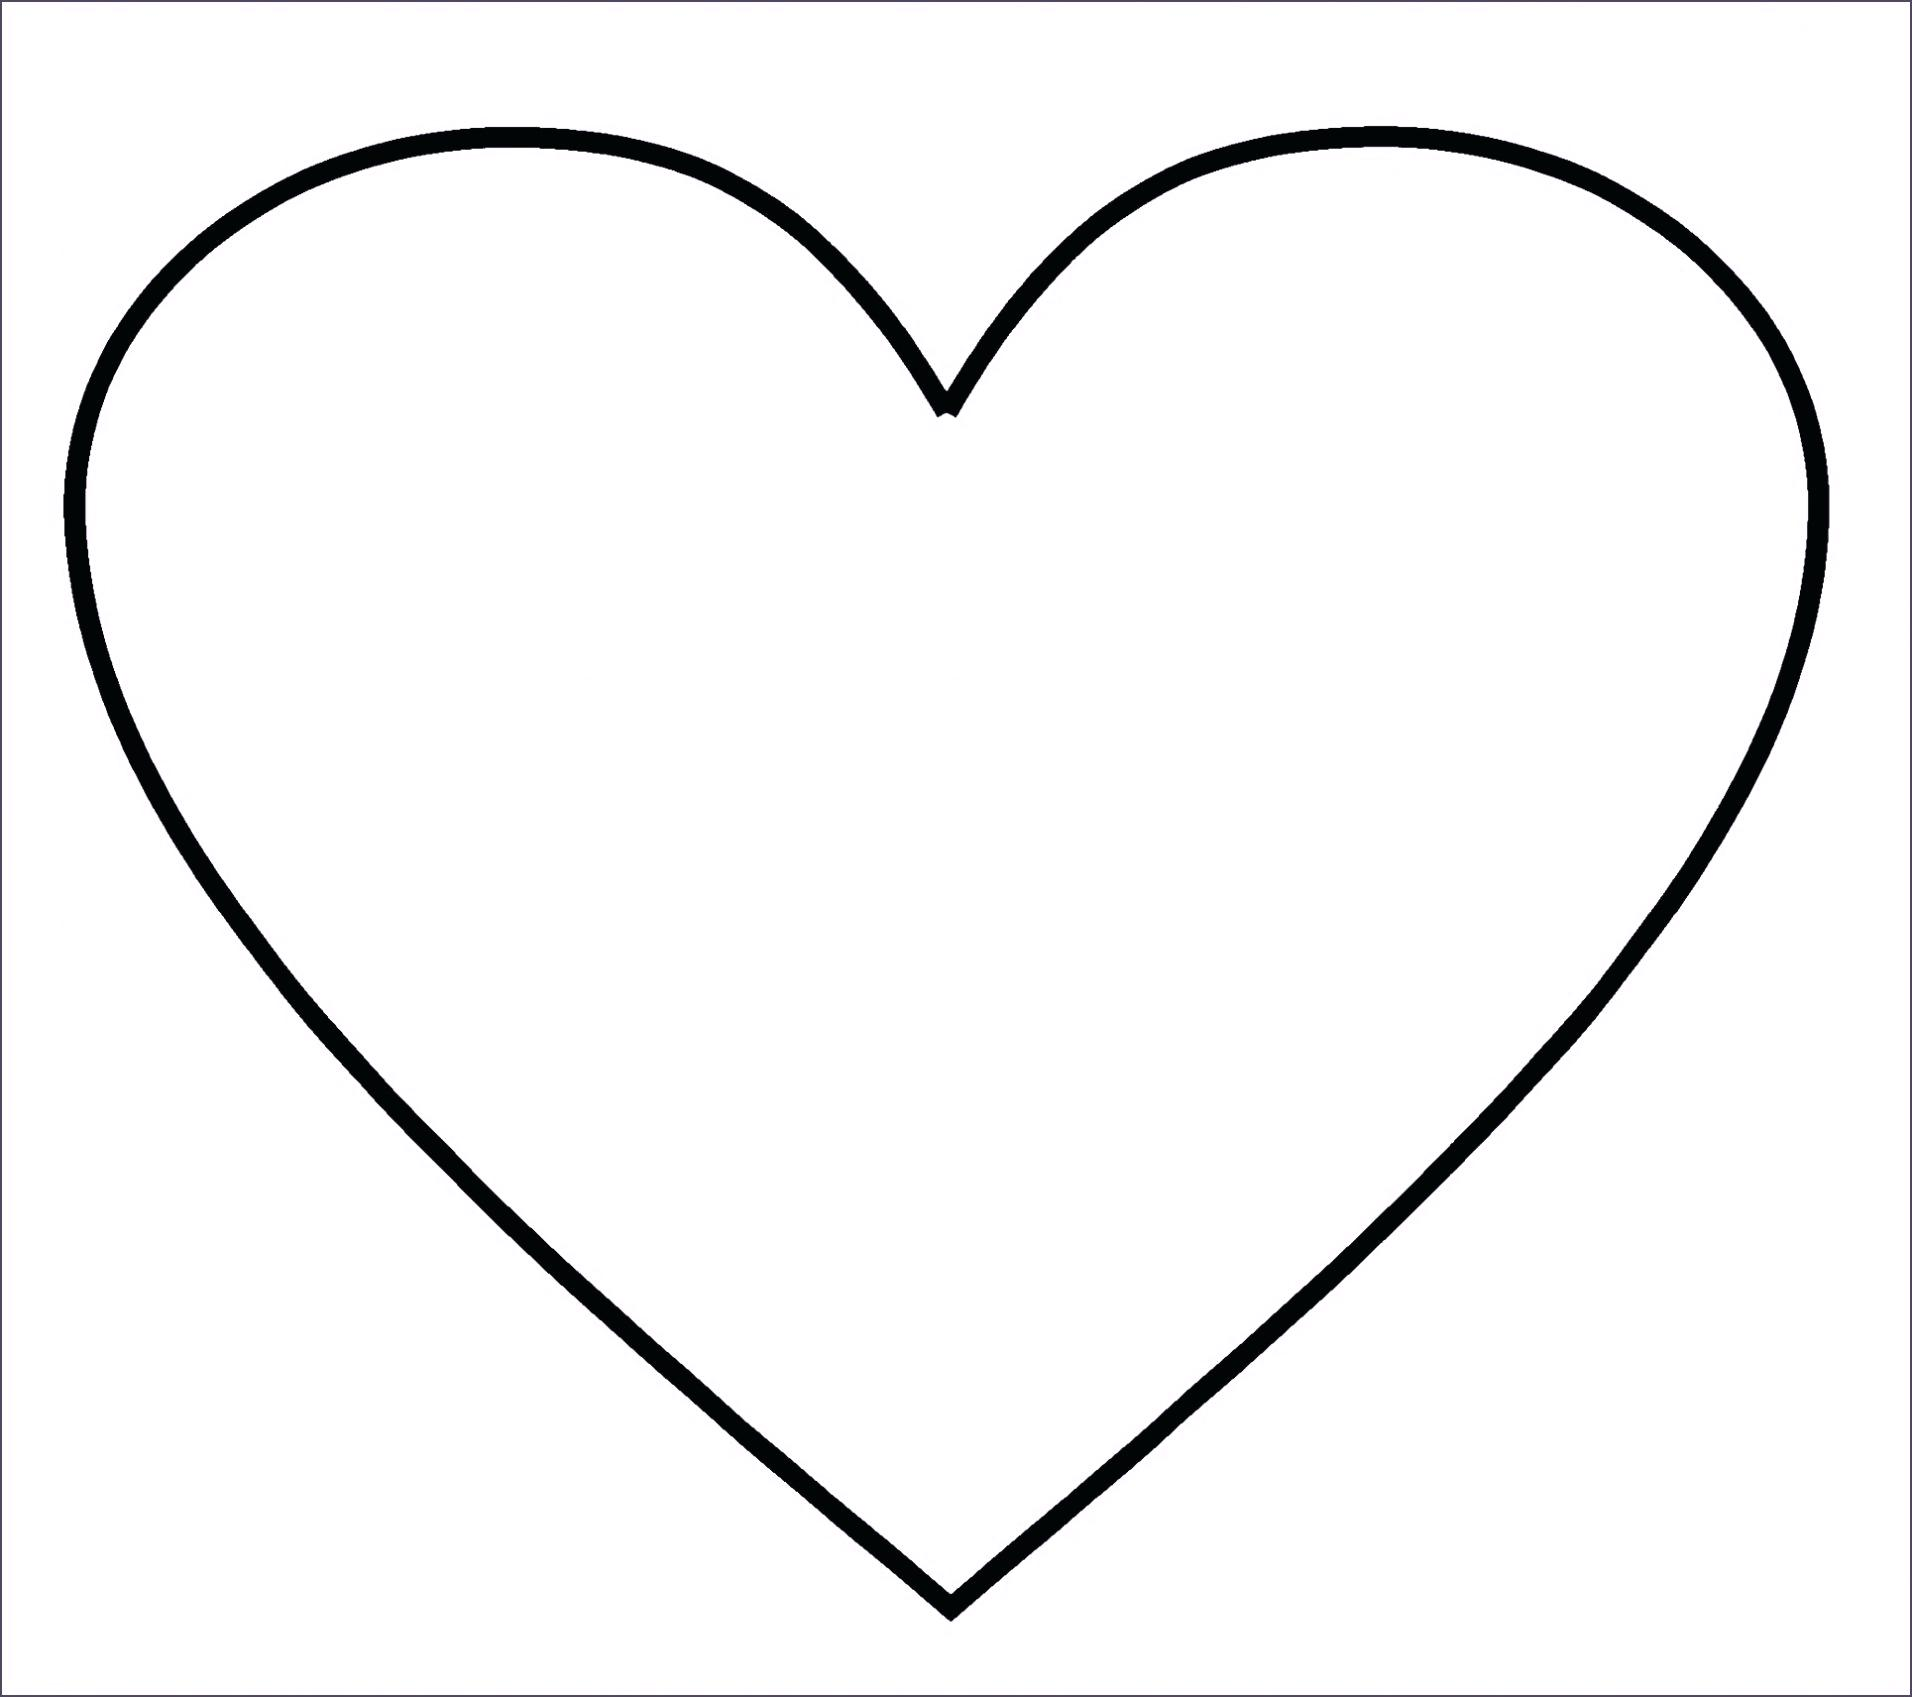 Heart Drawing Outline At Getdrawings